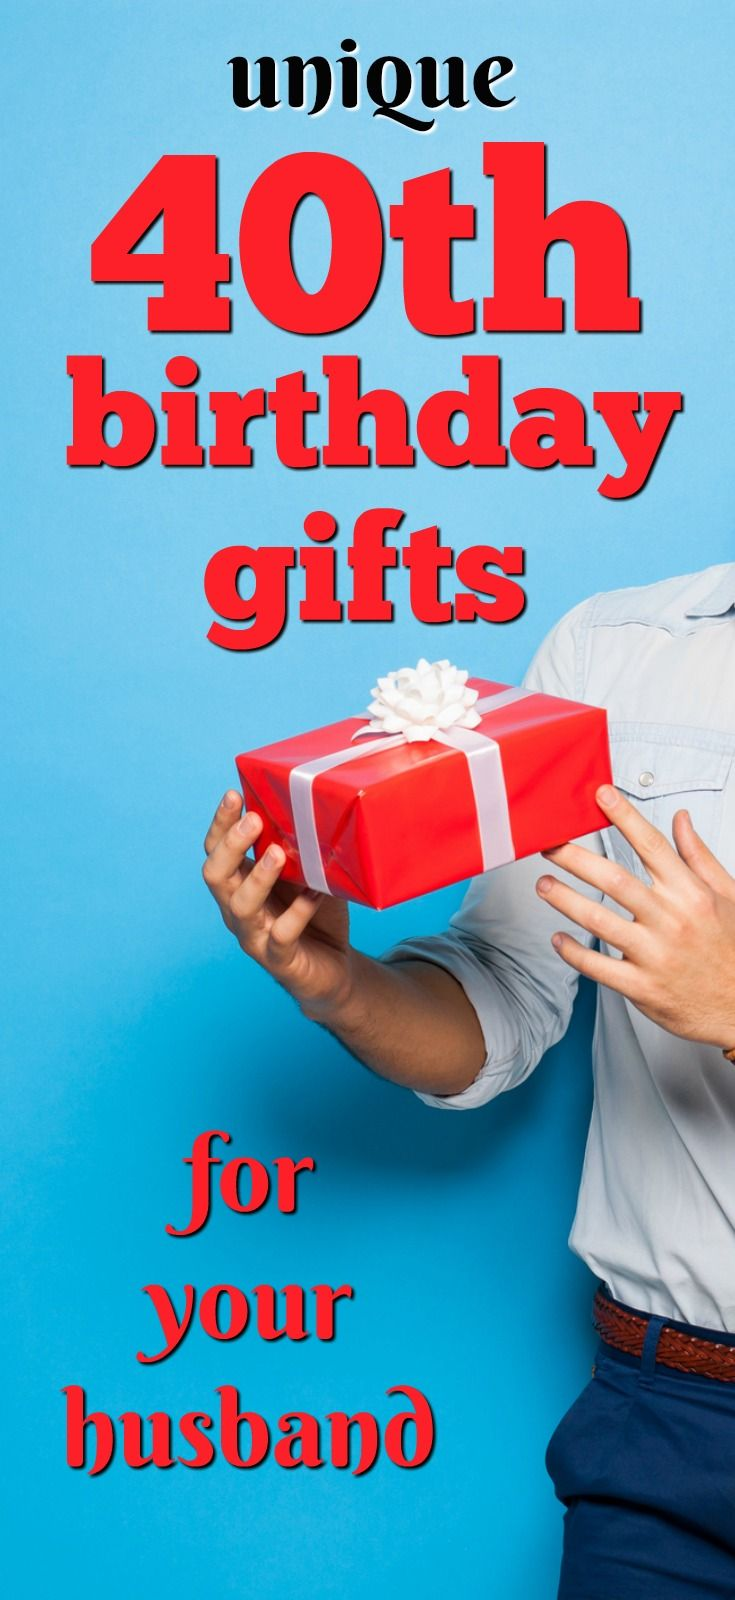 40 gift ideas for your husband's 40th birthday | sam's 40th